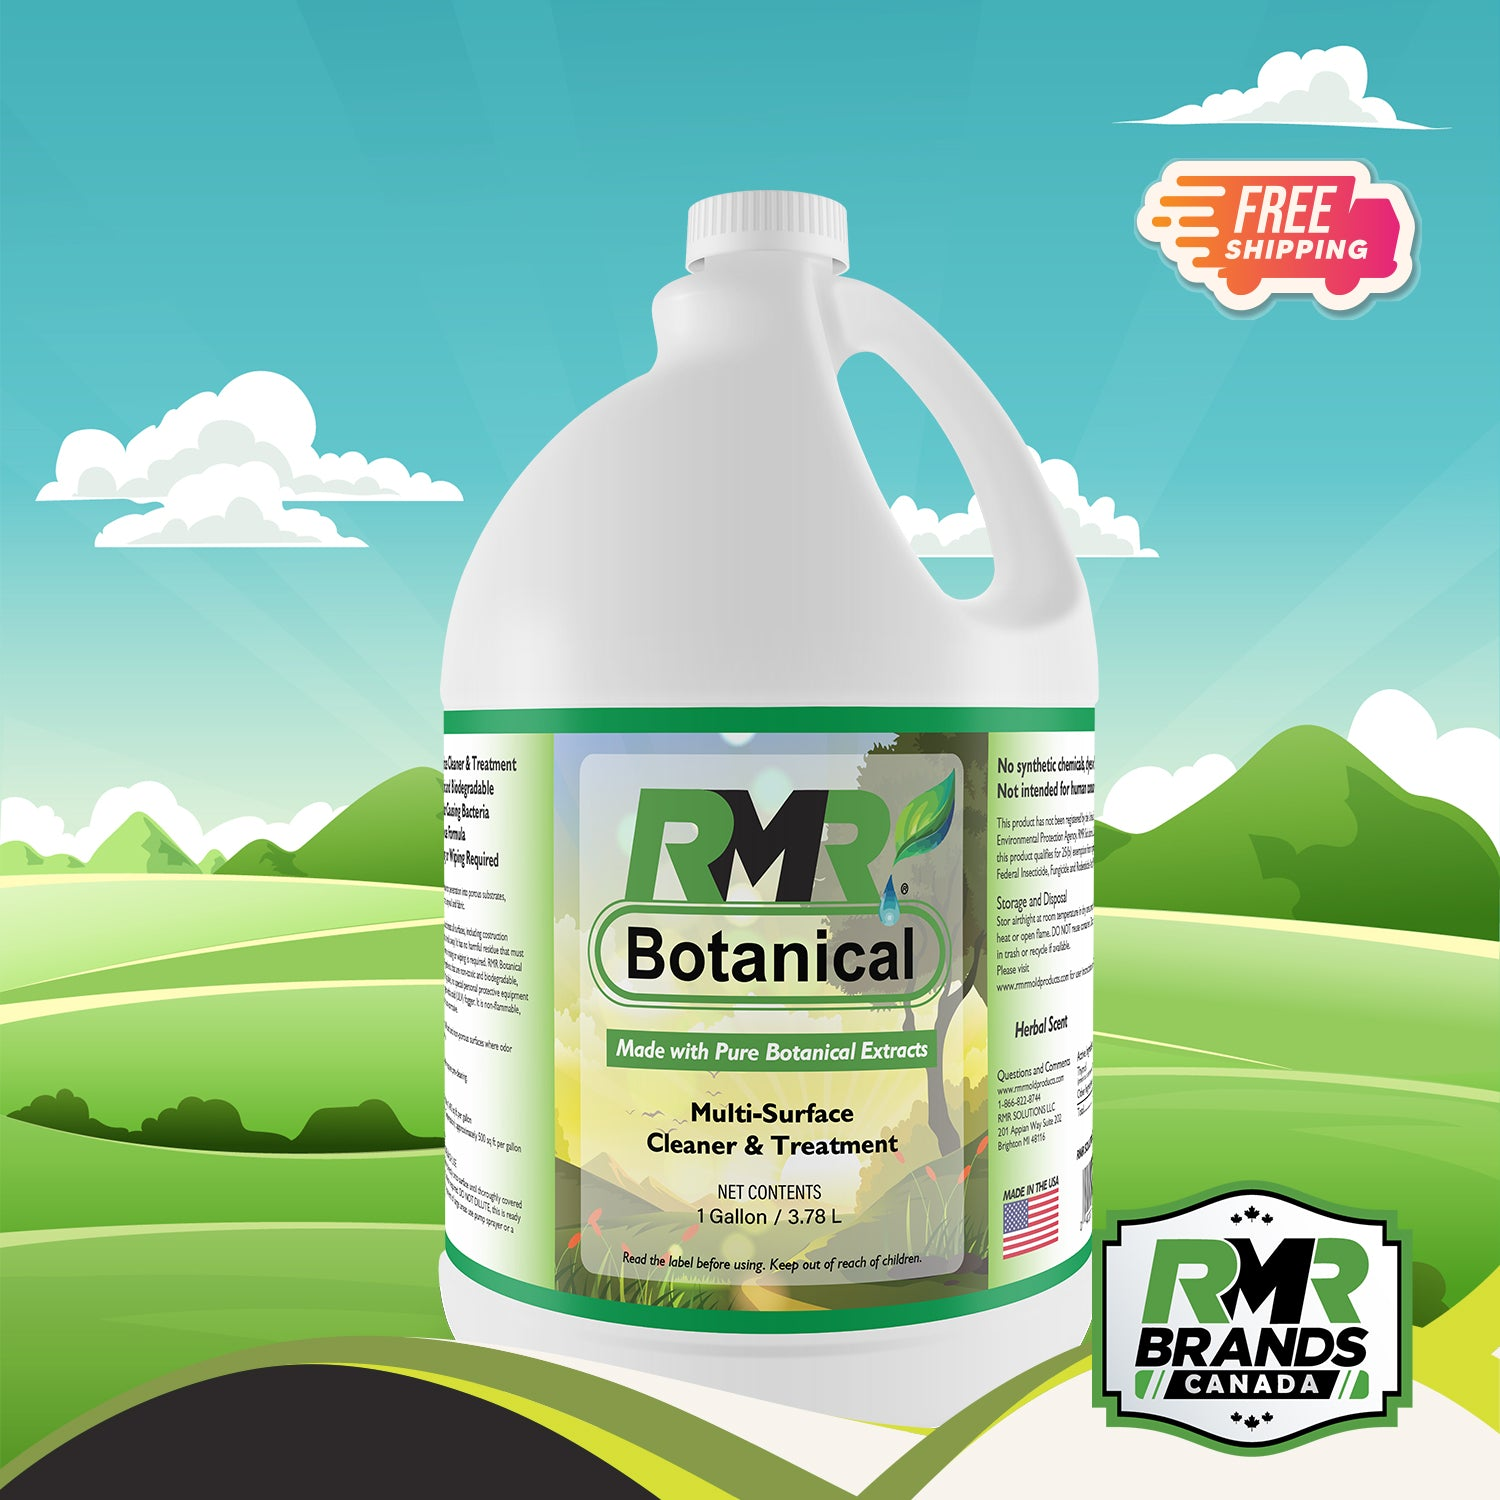 RMR Botanical Multi Surface Cleaner & Treatment - 1 Gallon (4 L)